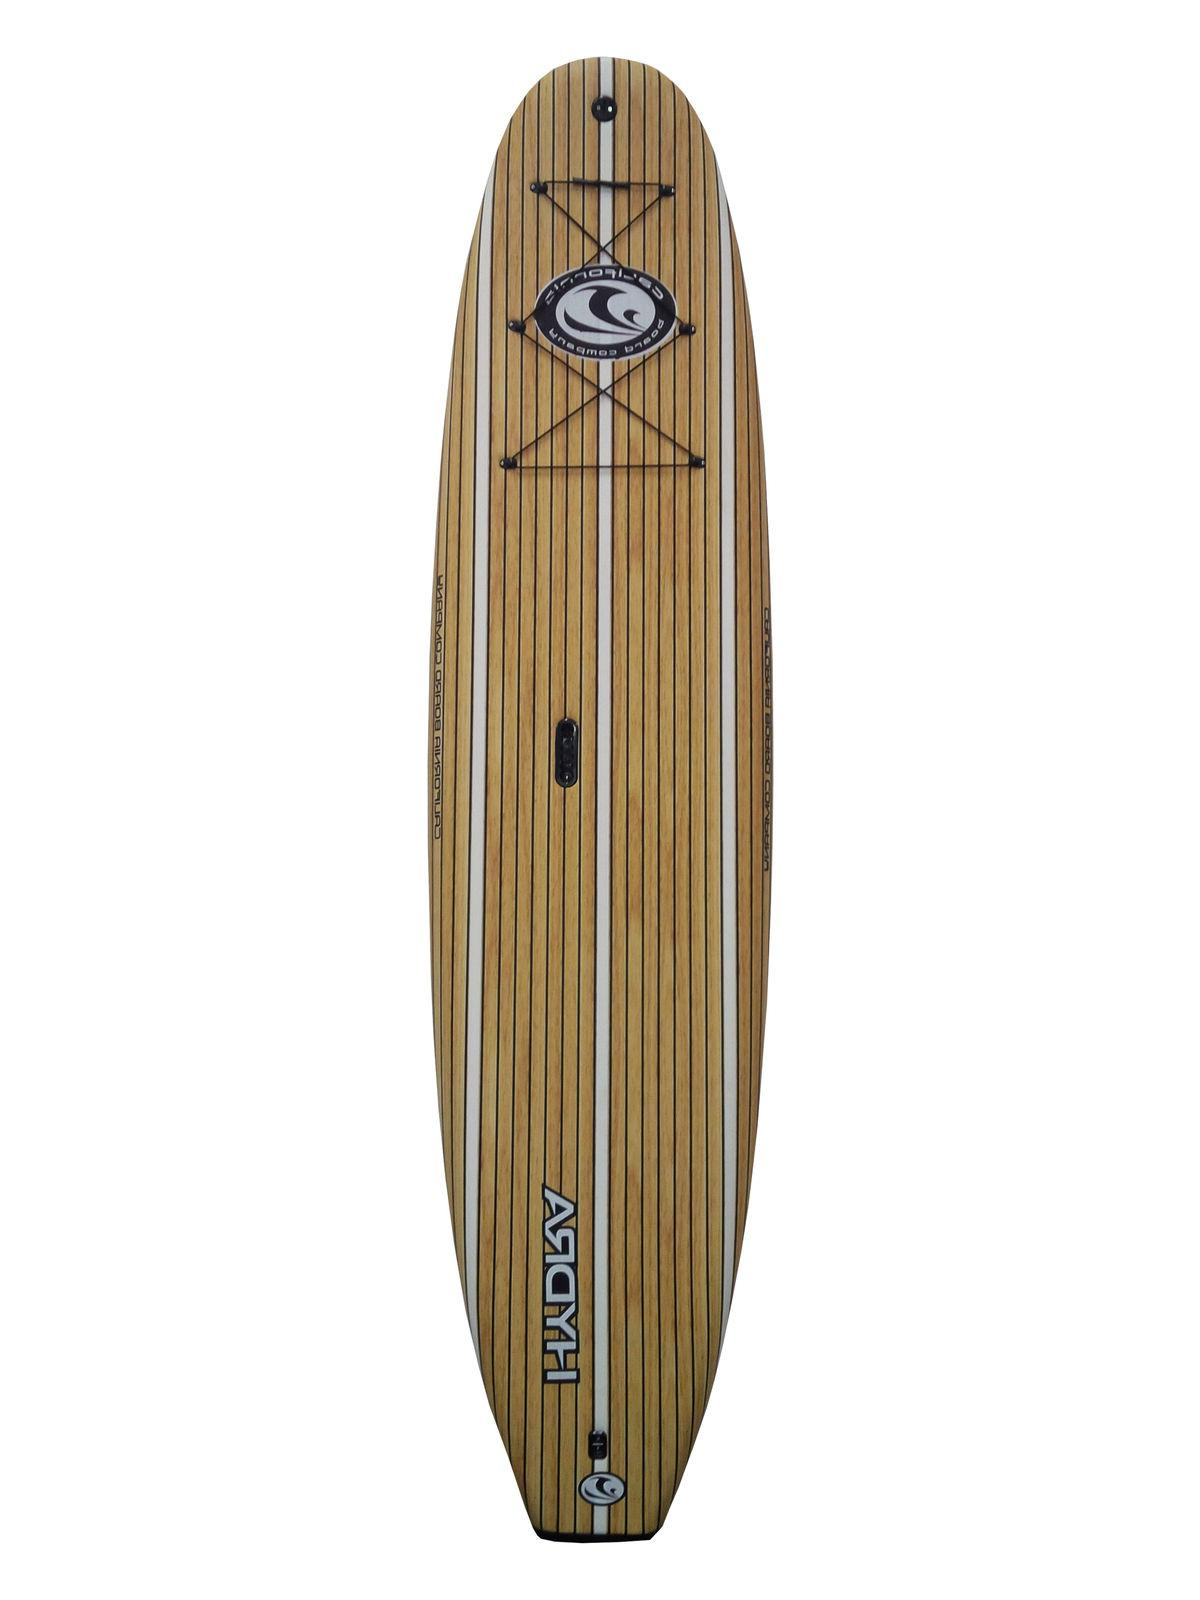 CBC Paddle One Center Mount, Tail Cap & Roof